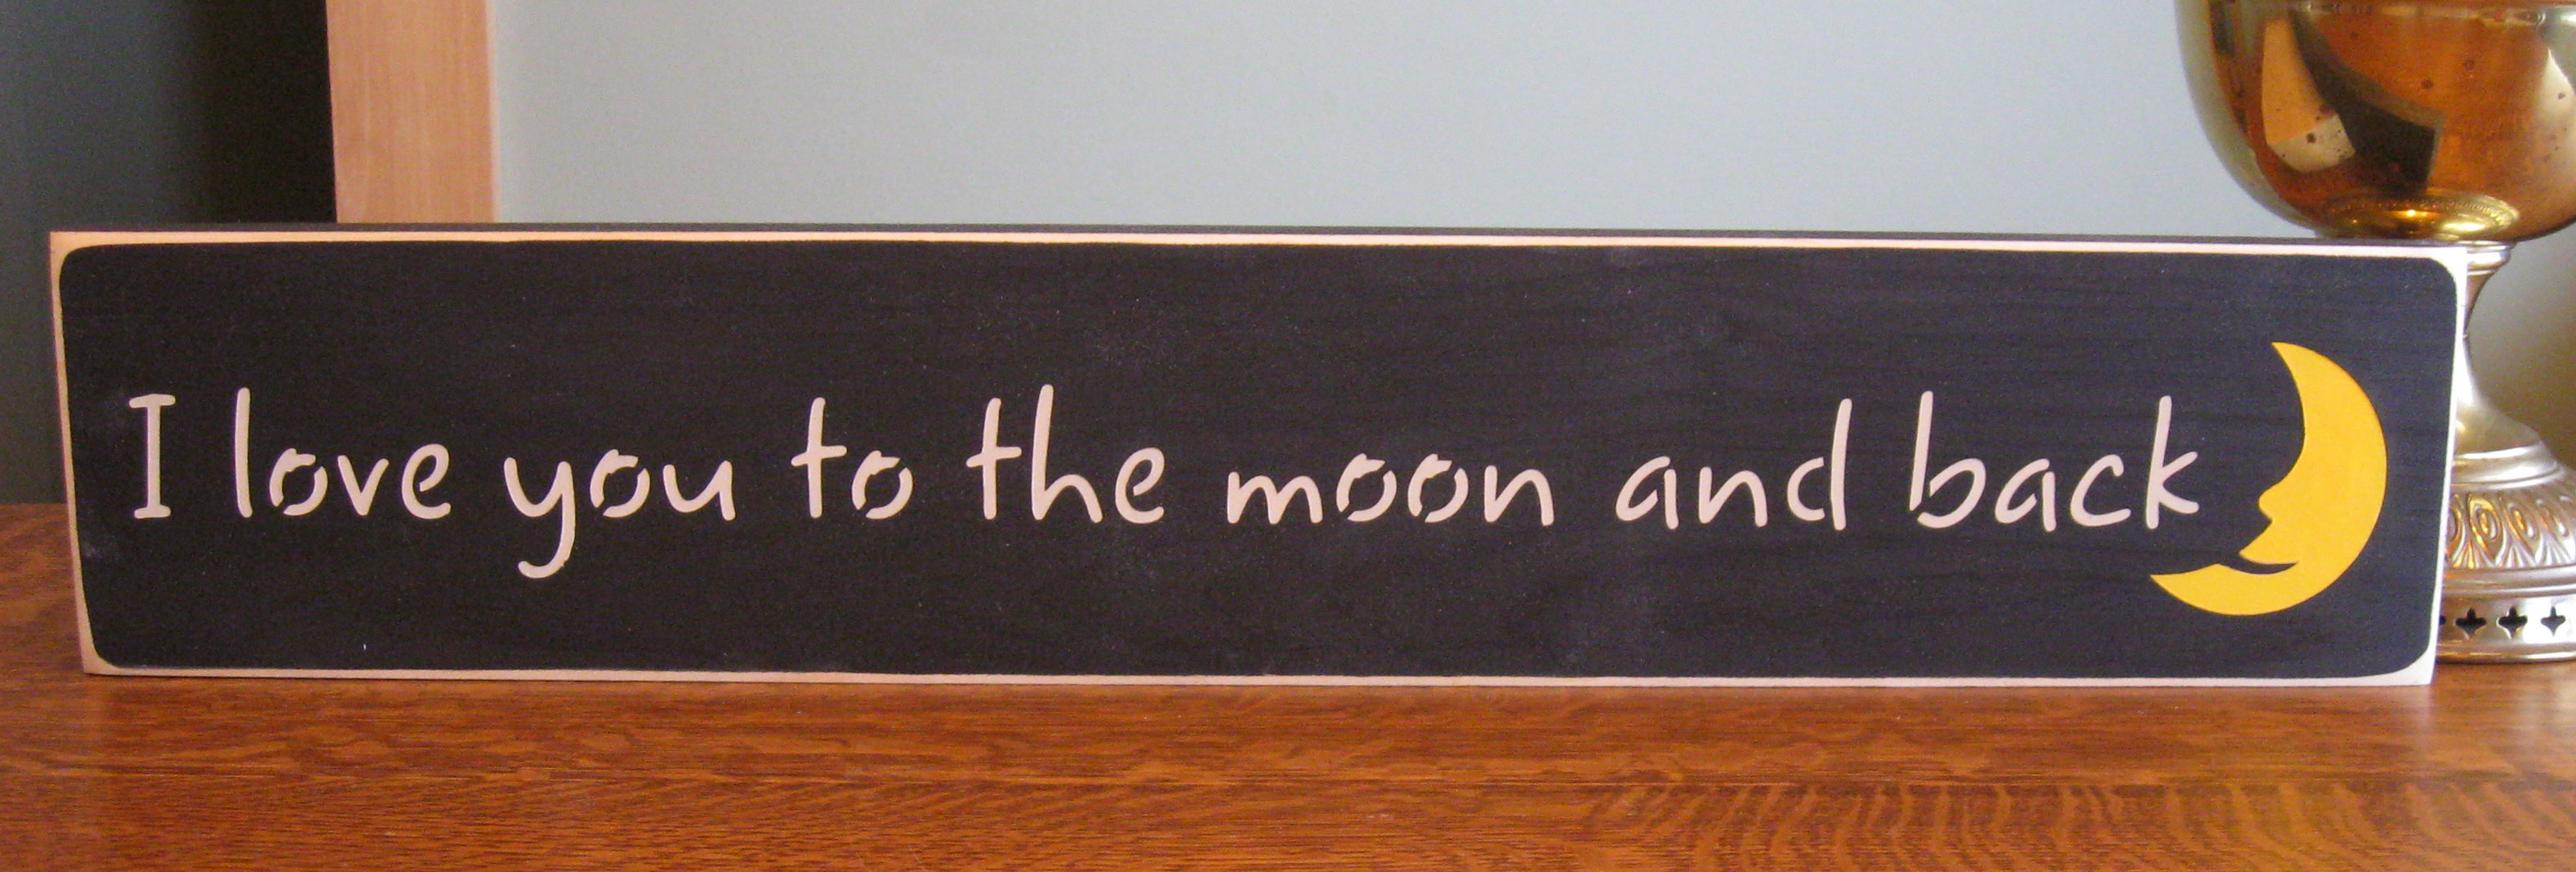 i love you to the moon and back wall from thesignpost on etsy. Black Bedroom Furniture Sets. Home Design Ideas